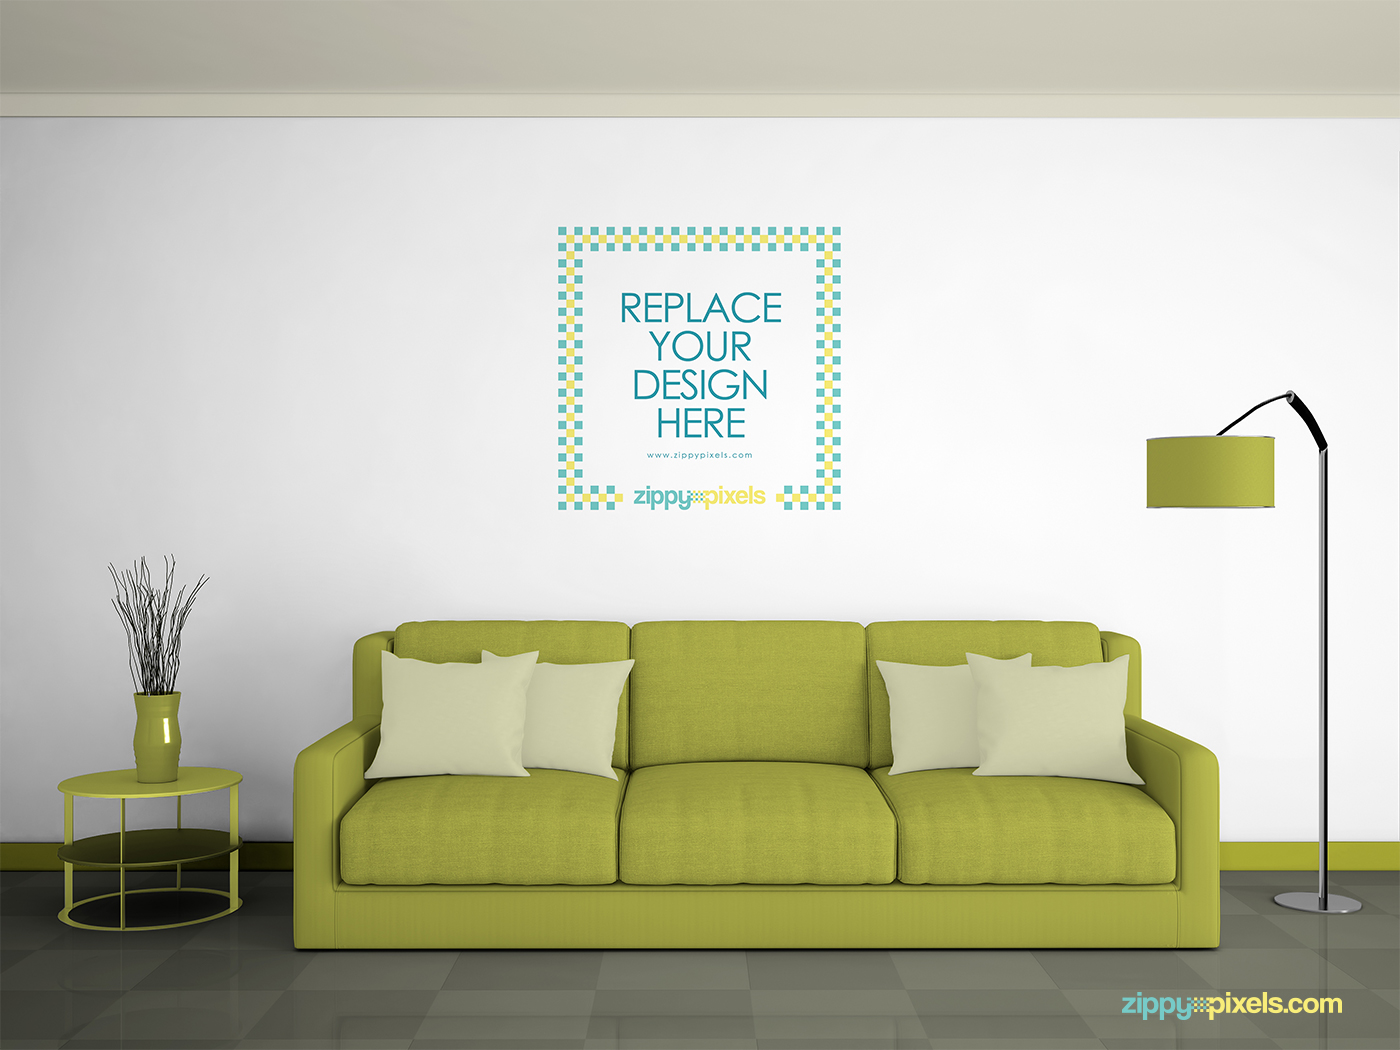 Sublime Free Wall Mockup PSD  free psd  UI Download